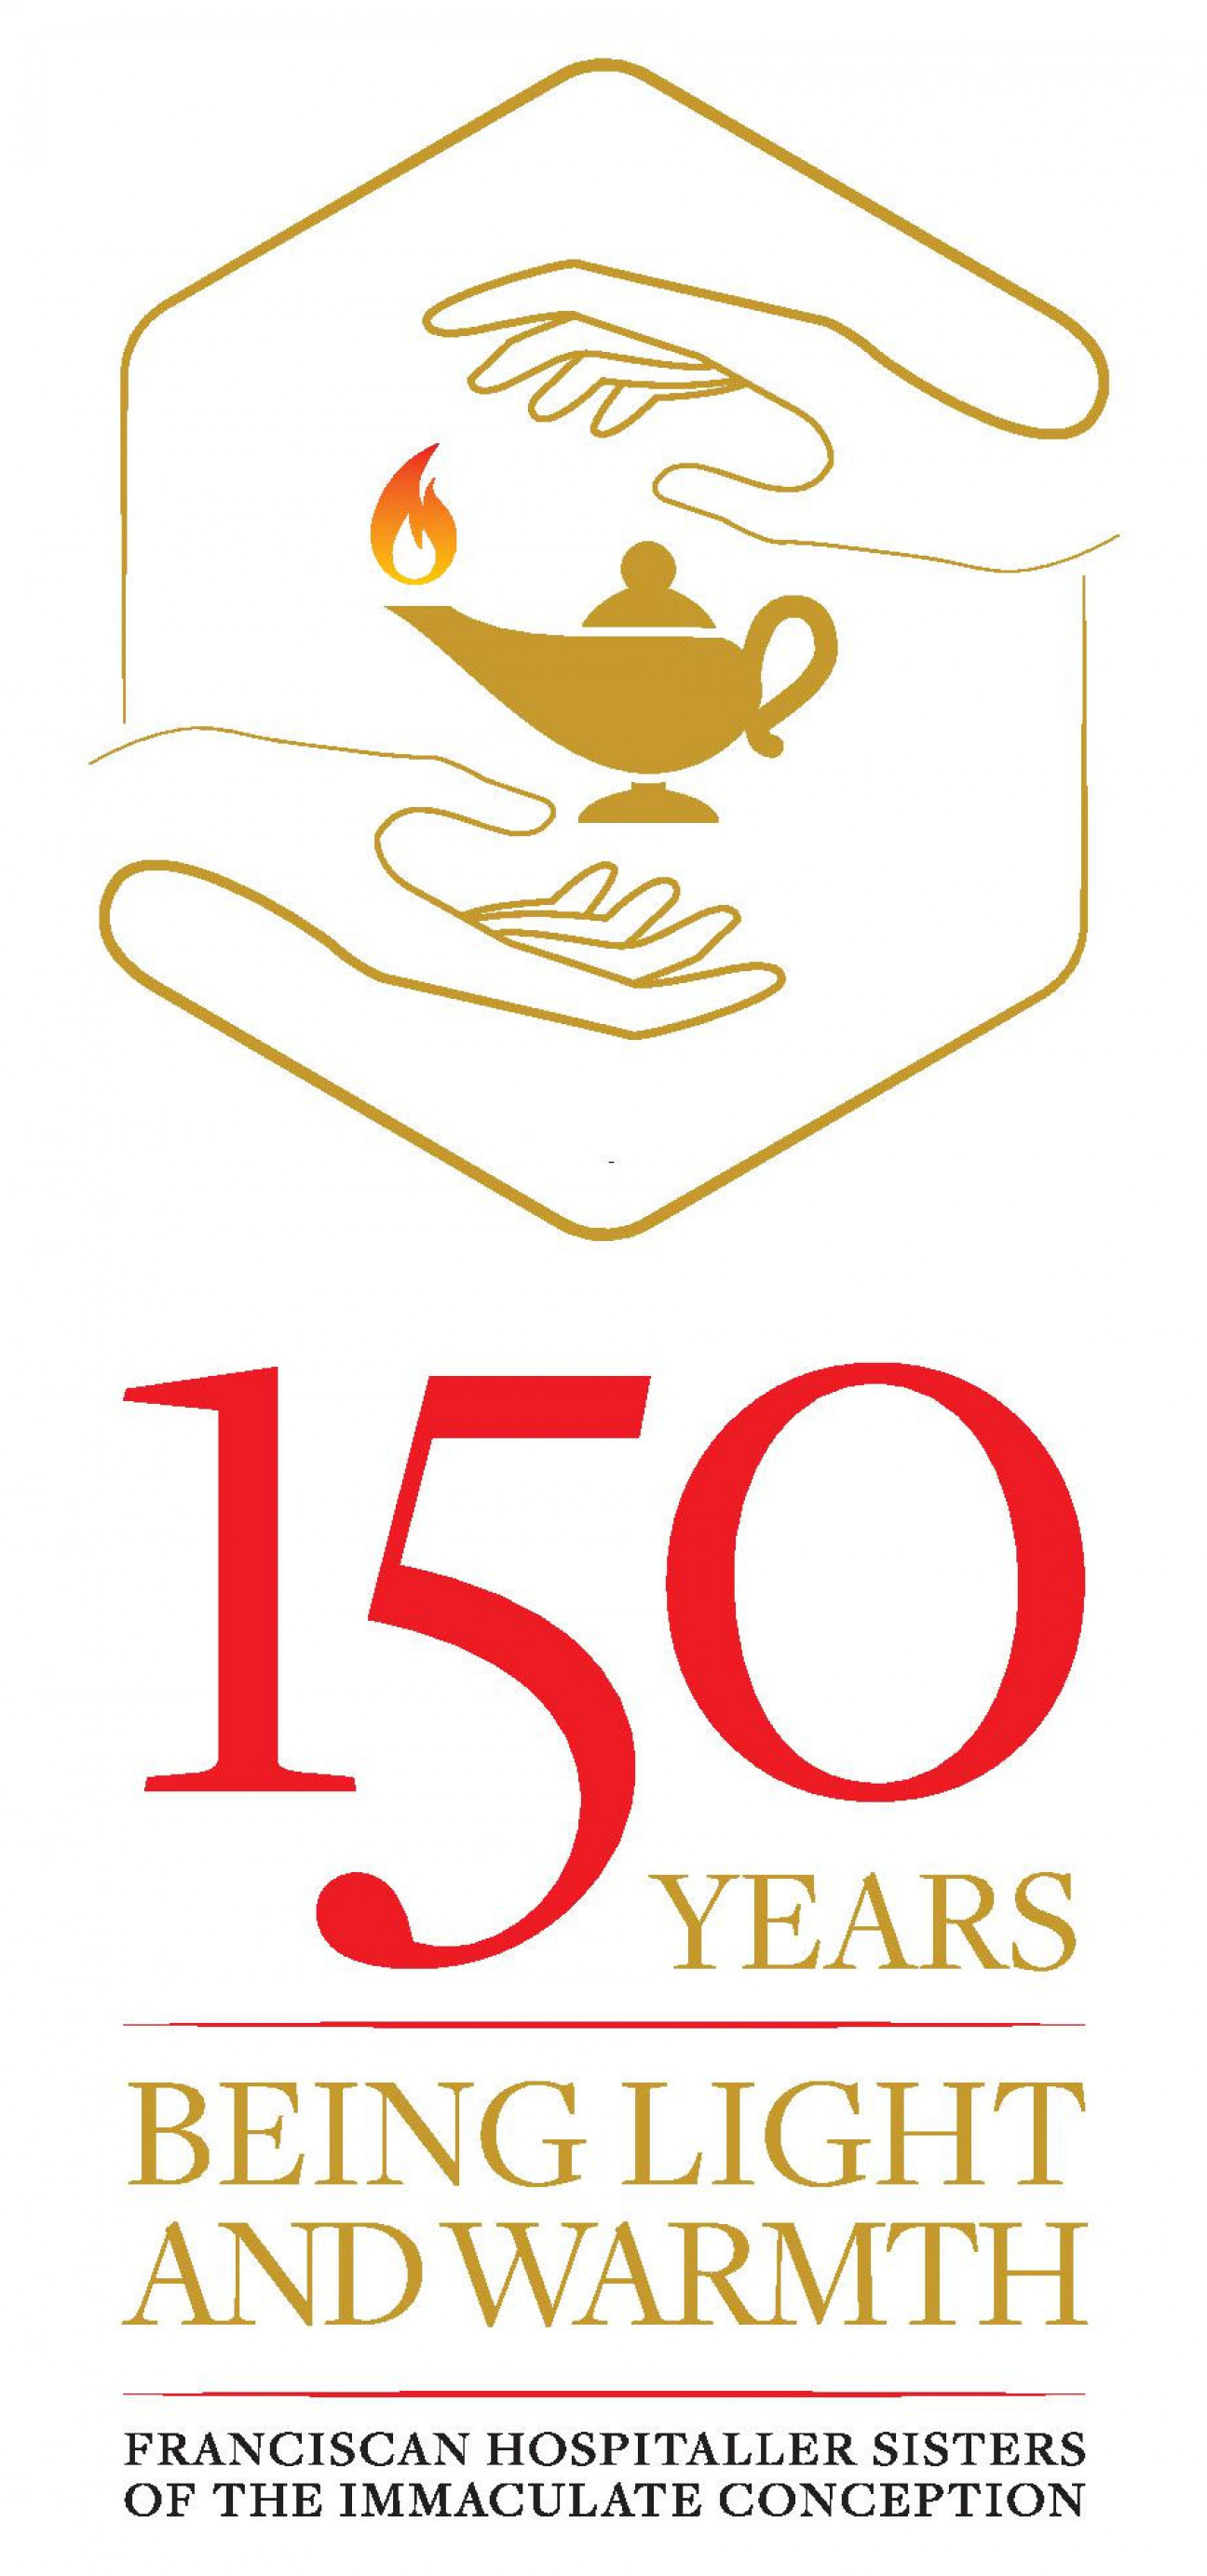 150 Years - Being Light and Warmth